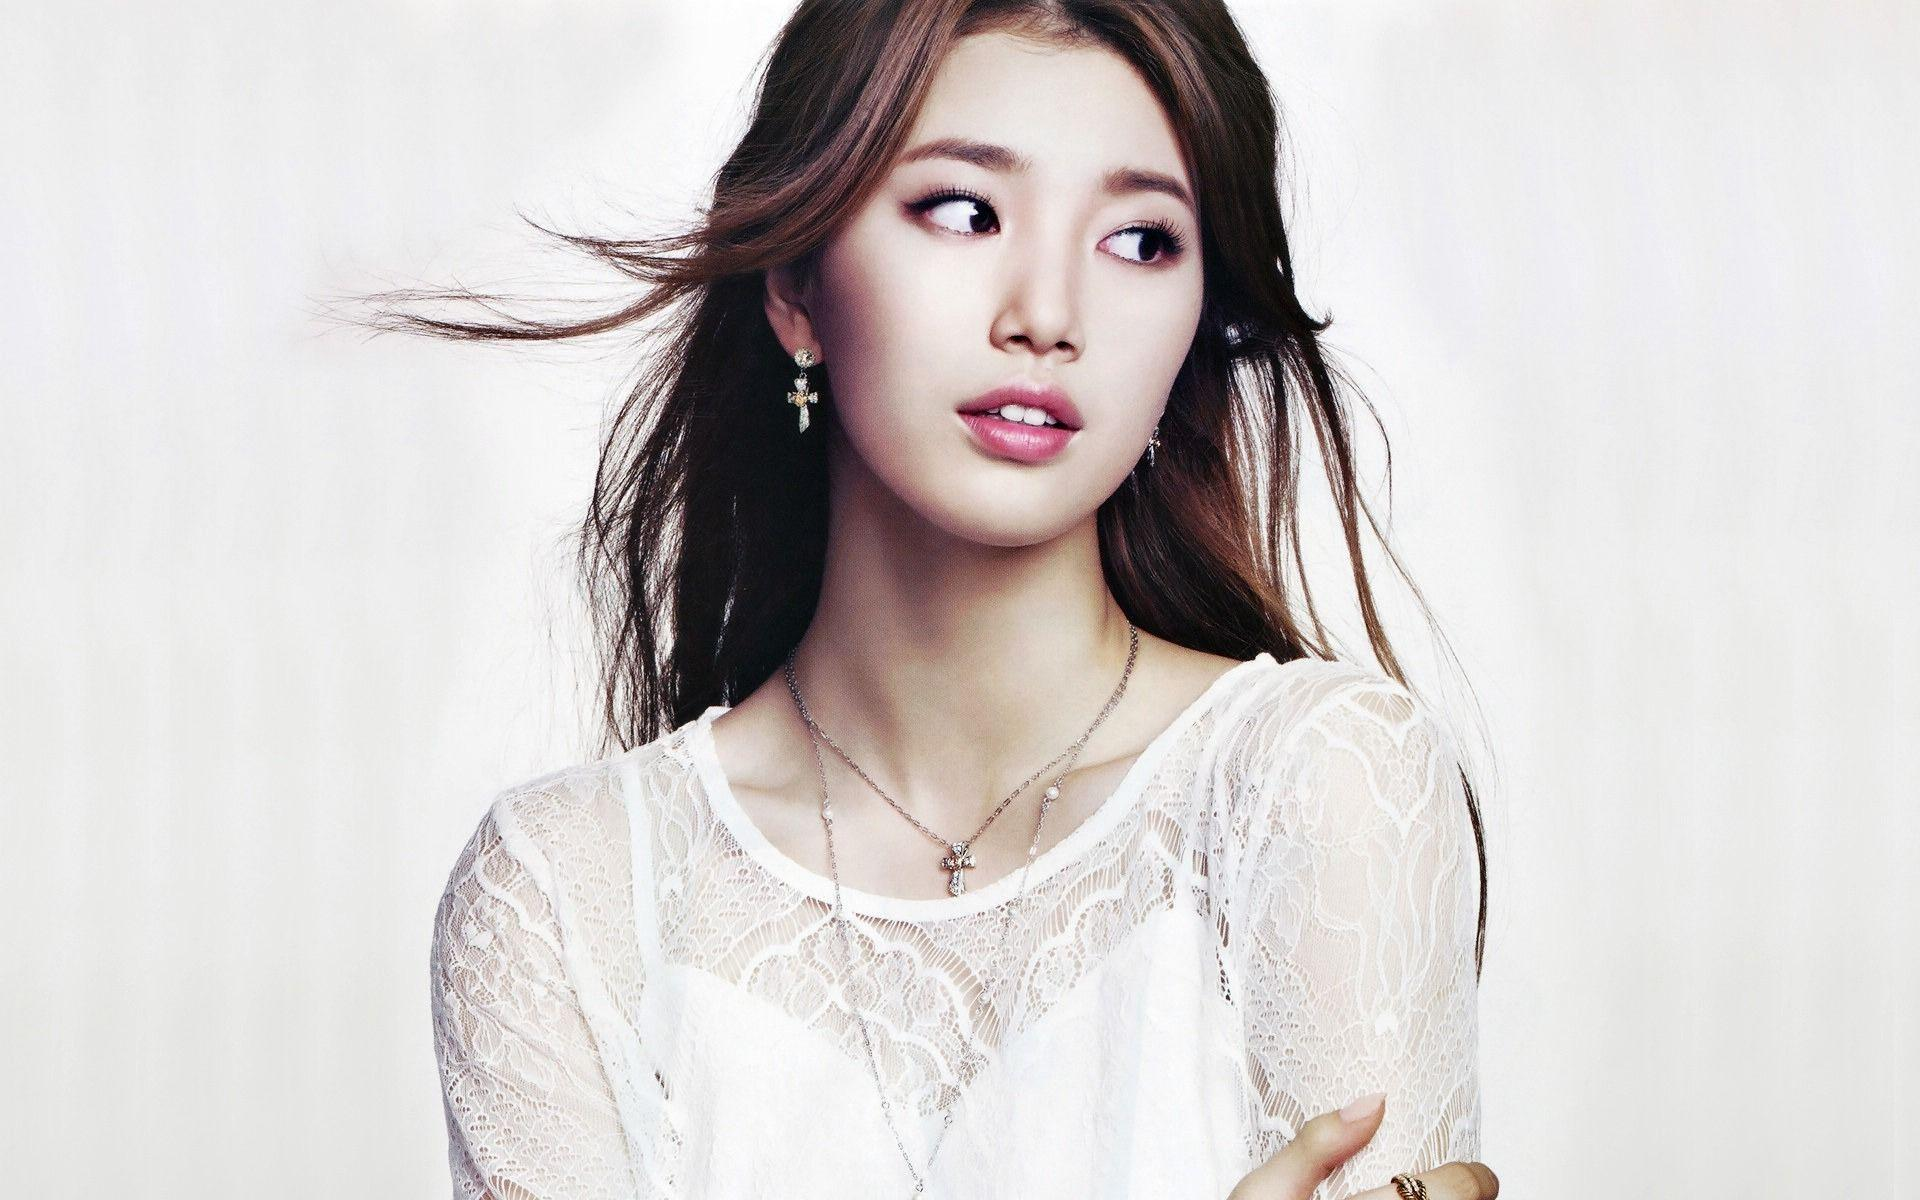 16 Suzy HD Wallpapers | Backgrounds - Wallpaper Abyss